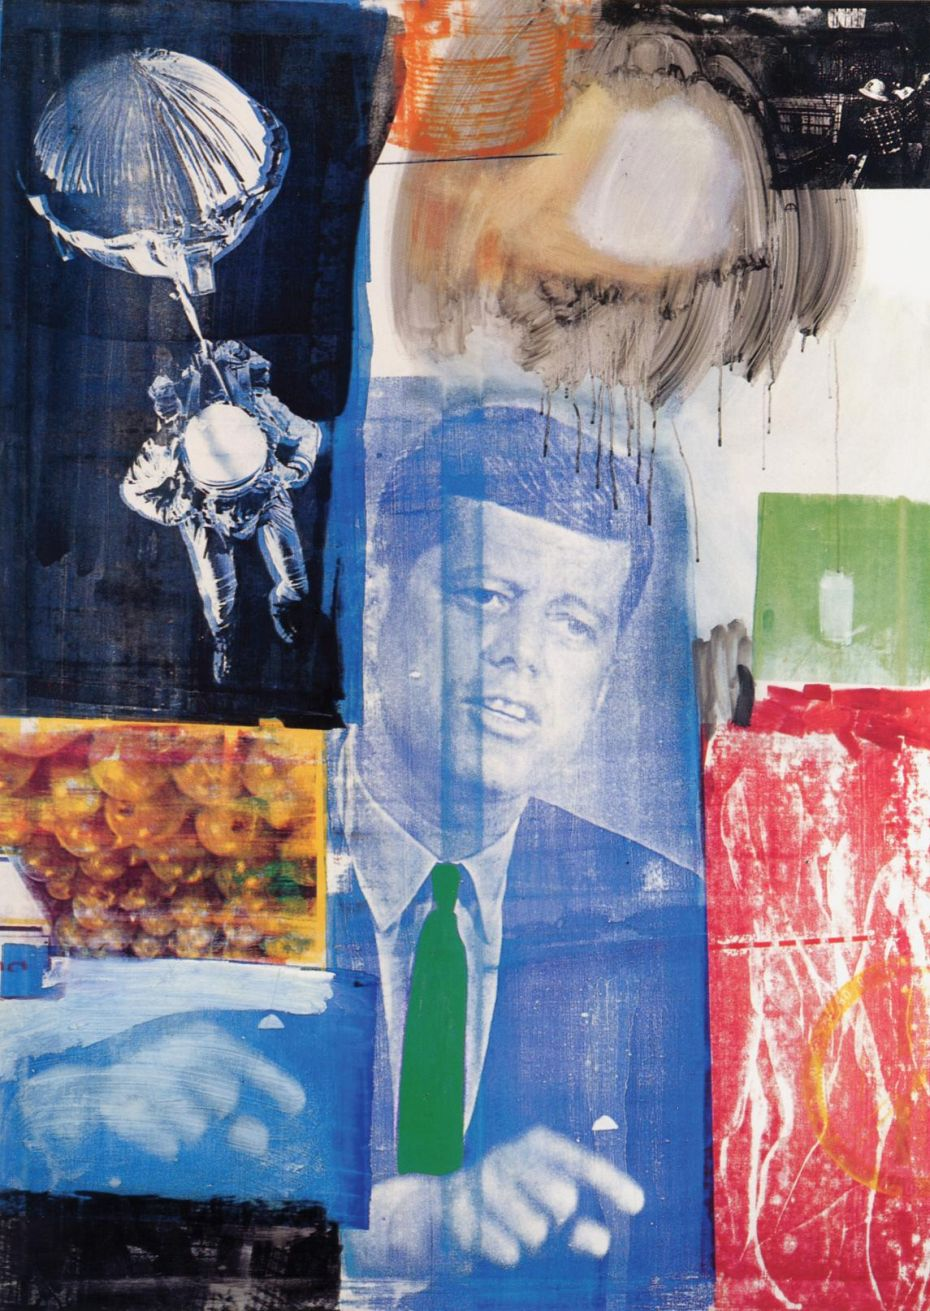 Robert Rauschenberg, 'Retroactive 1', 1963, Oil and silkscreen on canvas, 84 × 60 in.